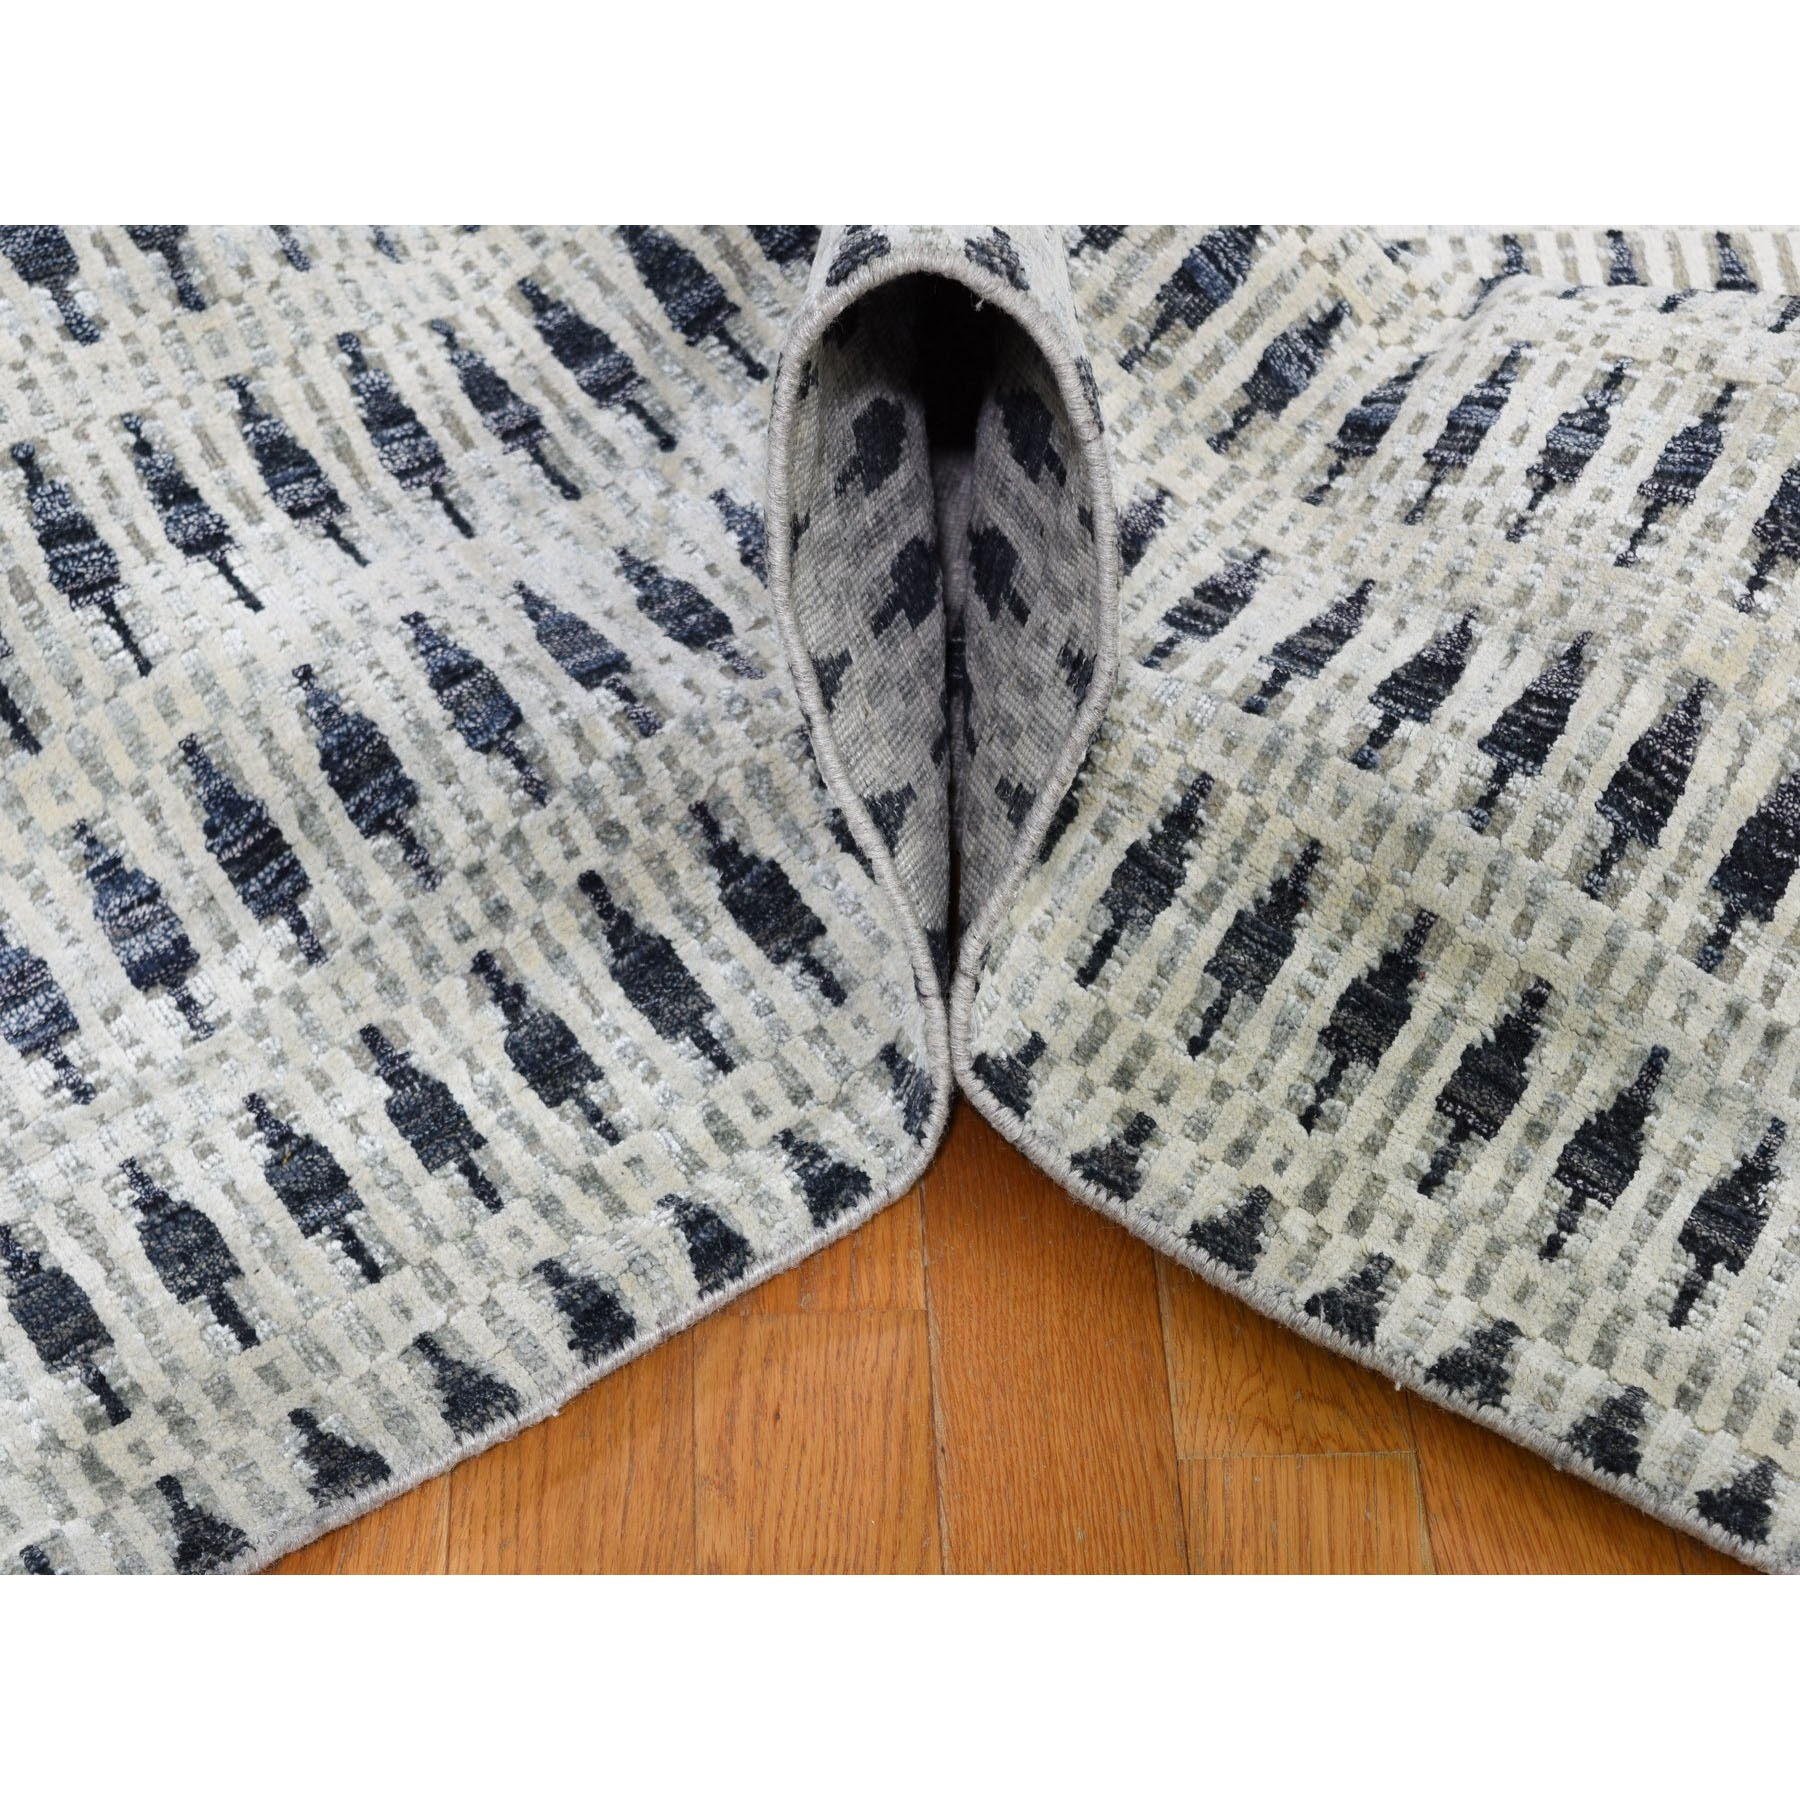 8-10 x12-2  THE SMALL TREES, Pure Silk with Textured Wool Gray Hand Knotted Oriental Rug